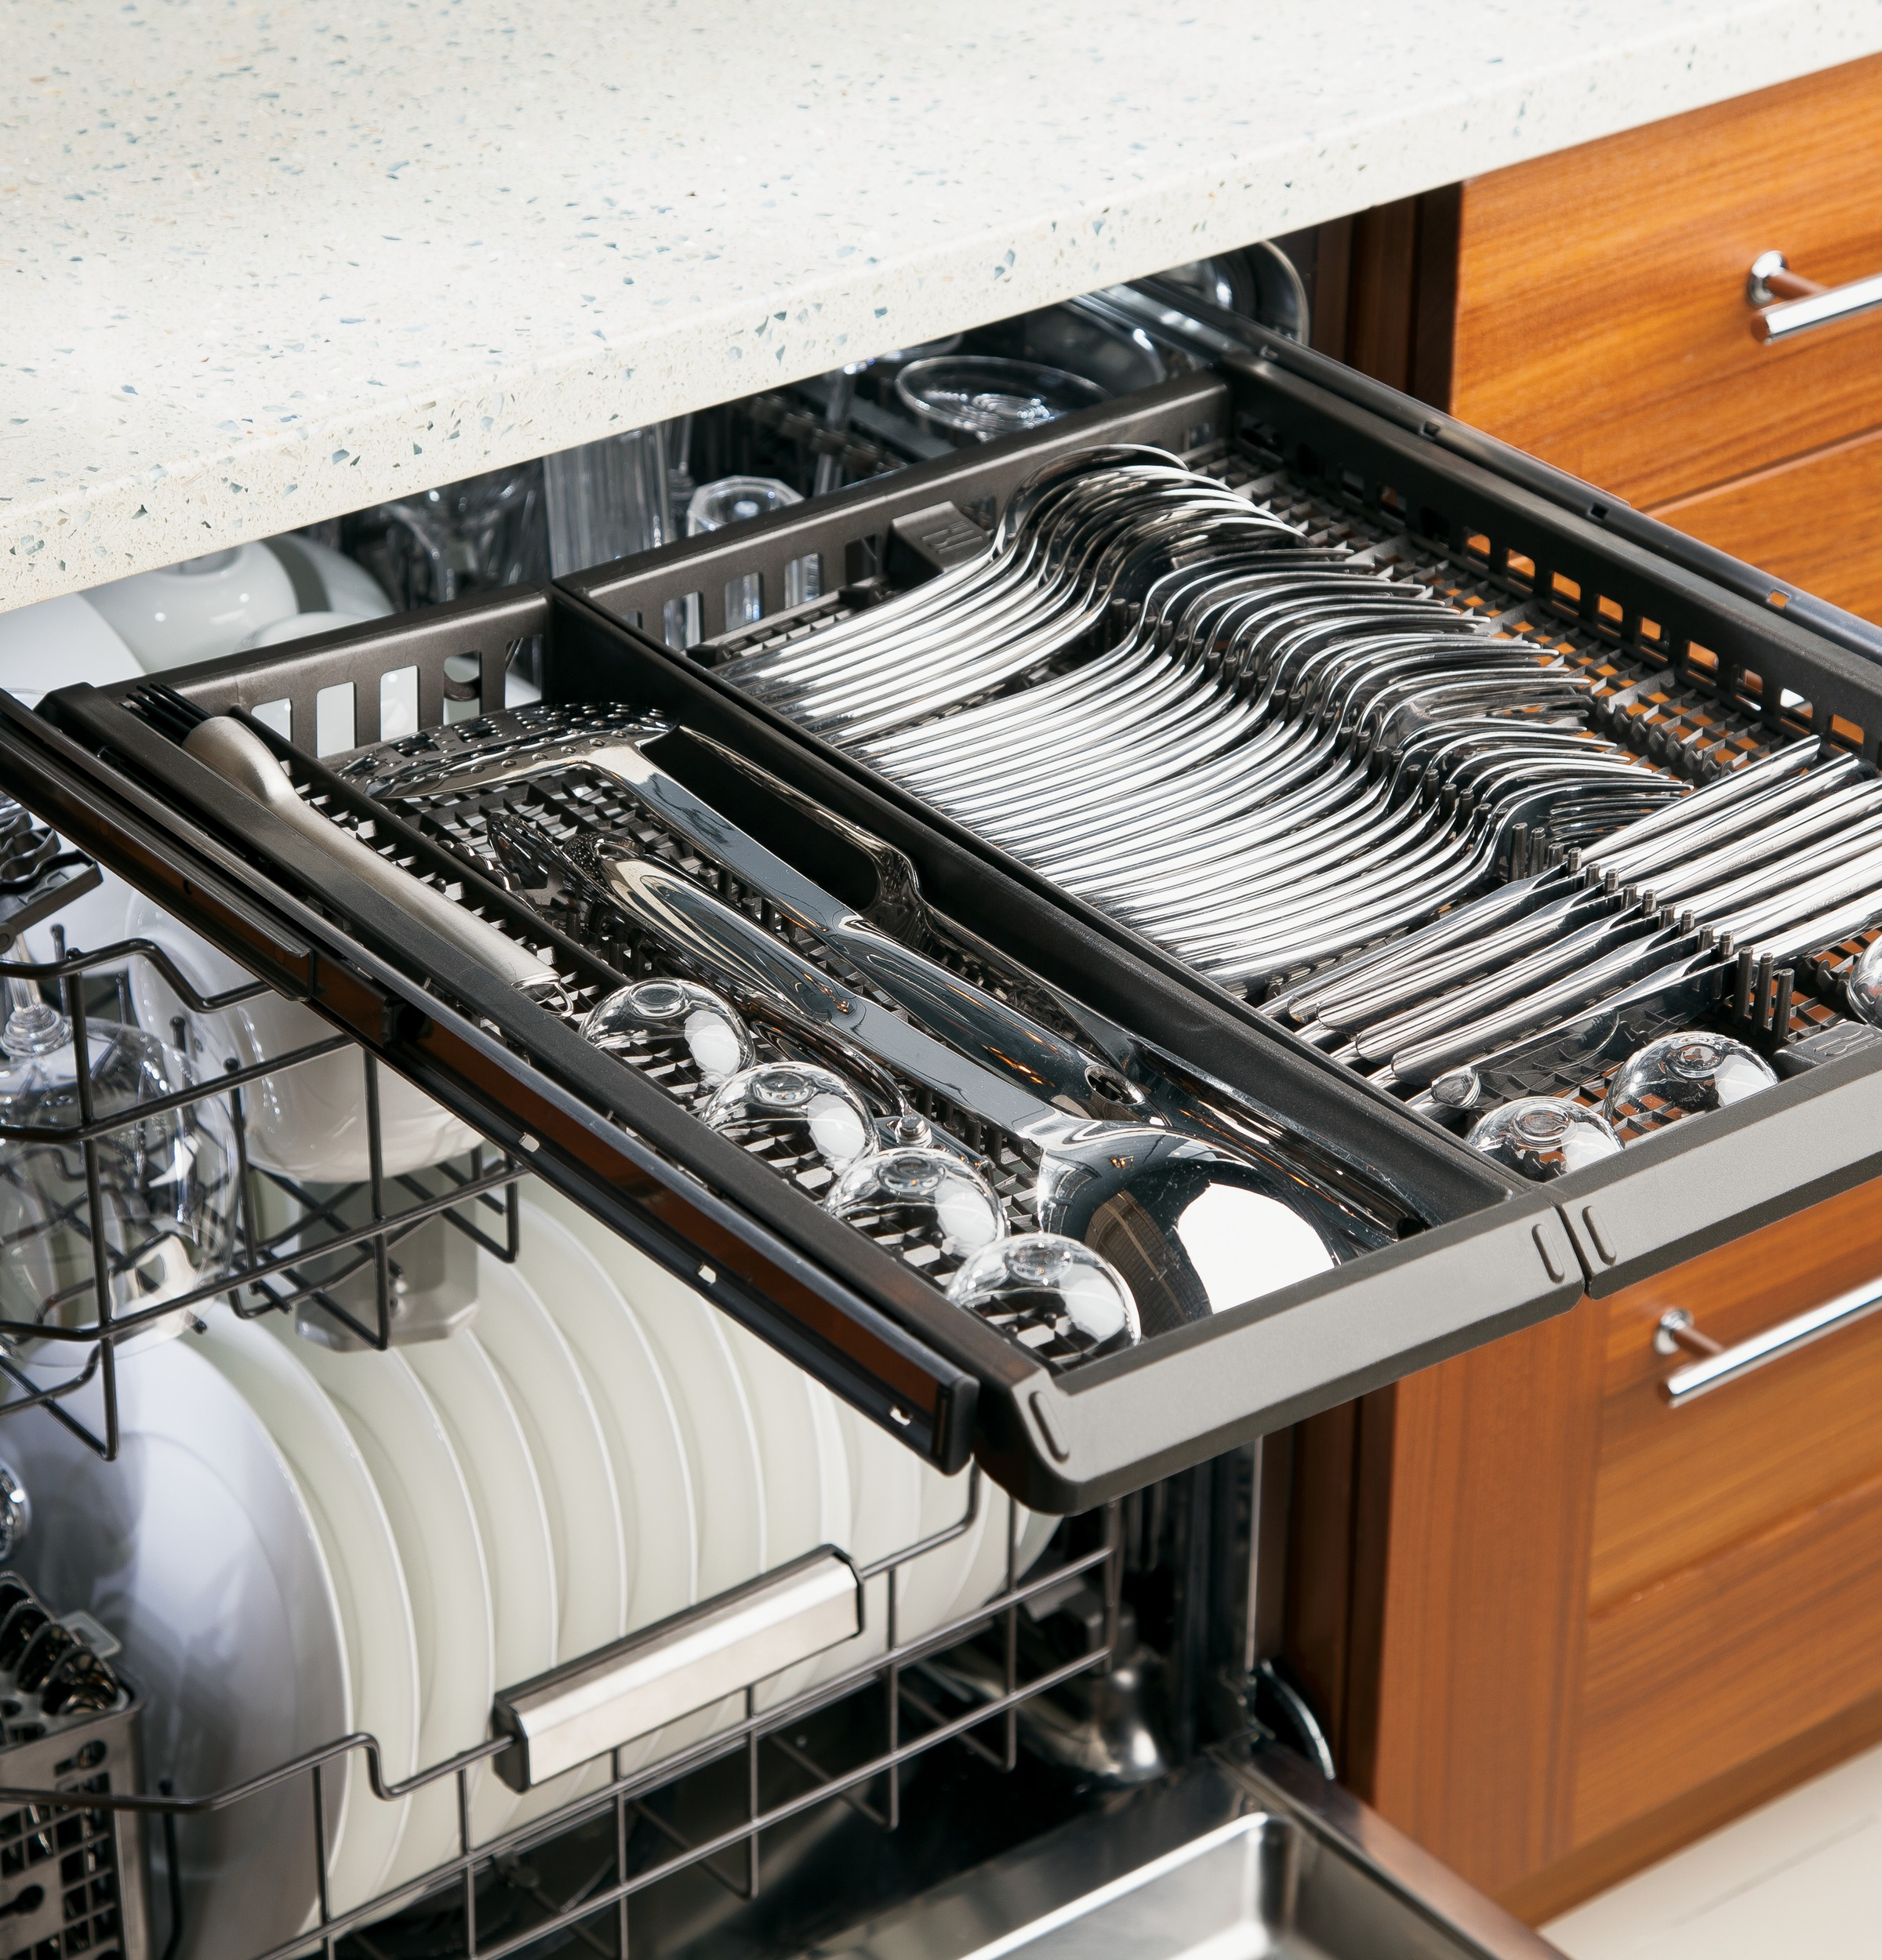 Ge Monogram Kitchen Appliances Monogramar Fully Integrated Dishwasher Zdt870sifii Ge Appliances